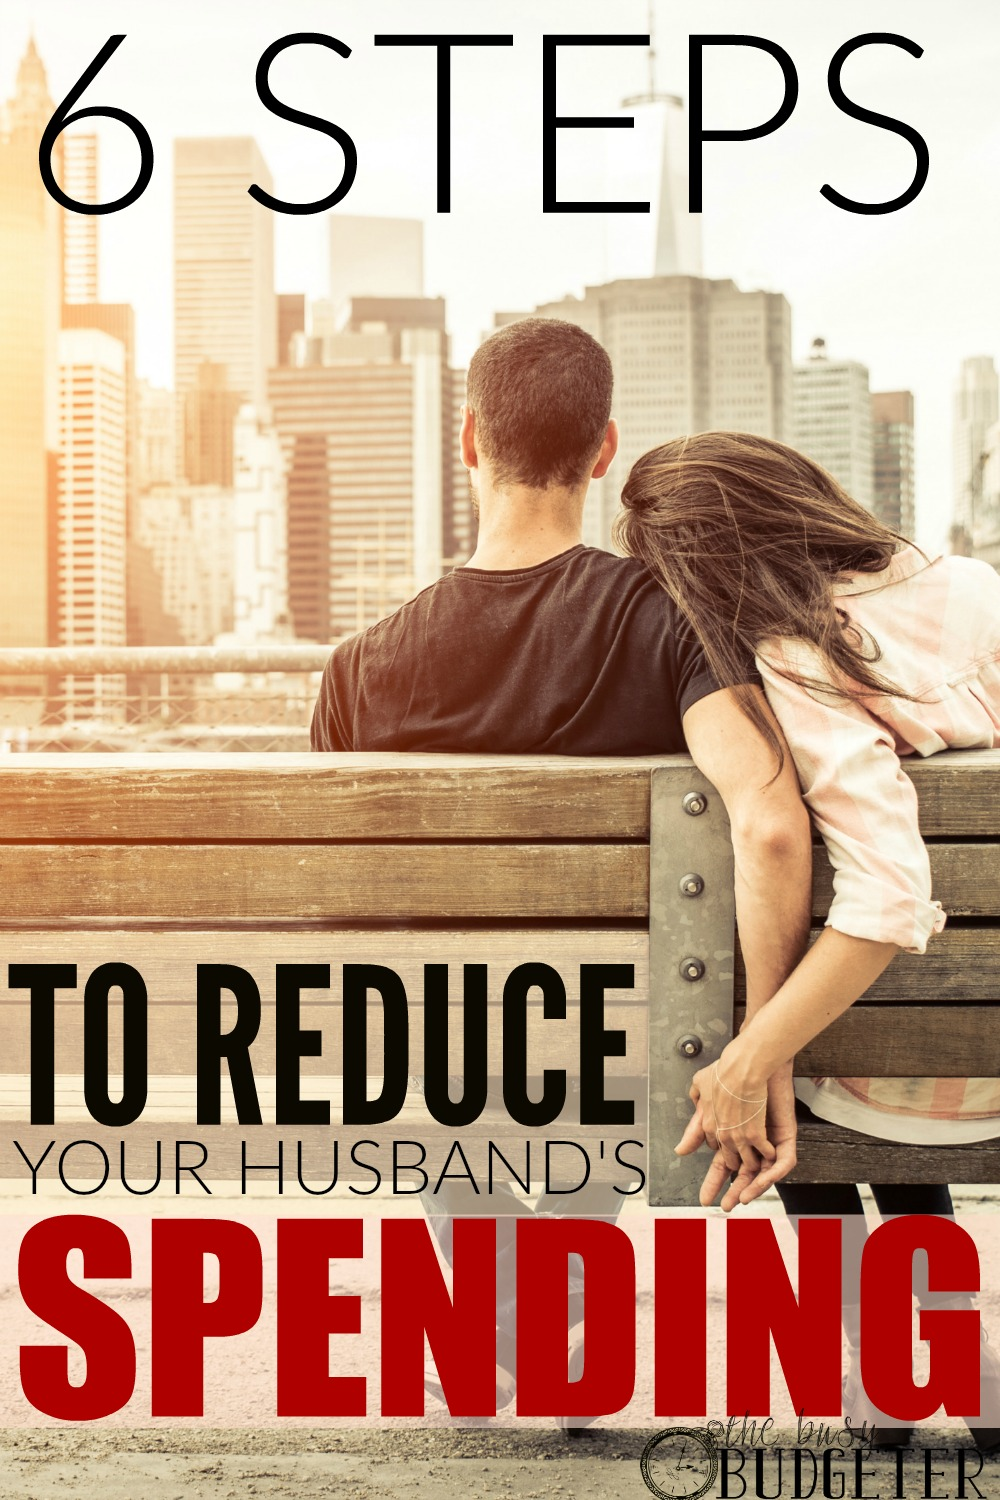 6 Steps to Reduce your Husband's Spending. * I was desperate! I'm so glad this worked. My husband doesn;t spend money out of control, but we just don't have a lot to spend. I've tried everything to get him to stop, but he just wouldn't. It was silly things, like coffee and lunch out. We had to get all the way to the step 6 but it worked! He hasn't gone off of our budget since!